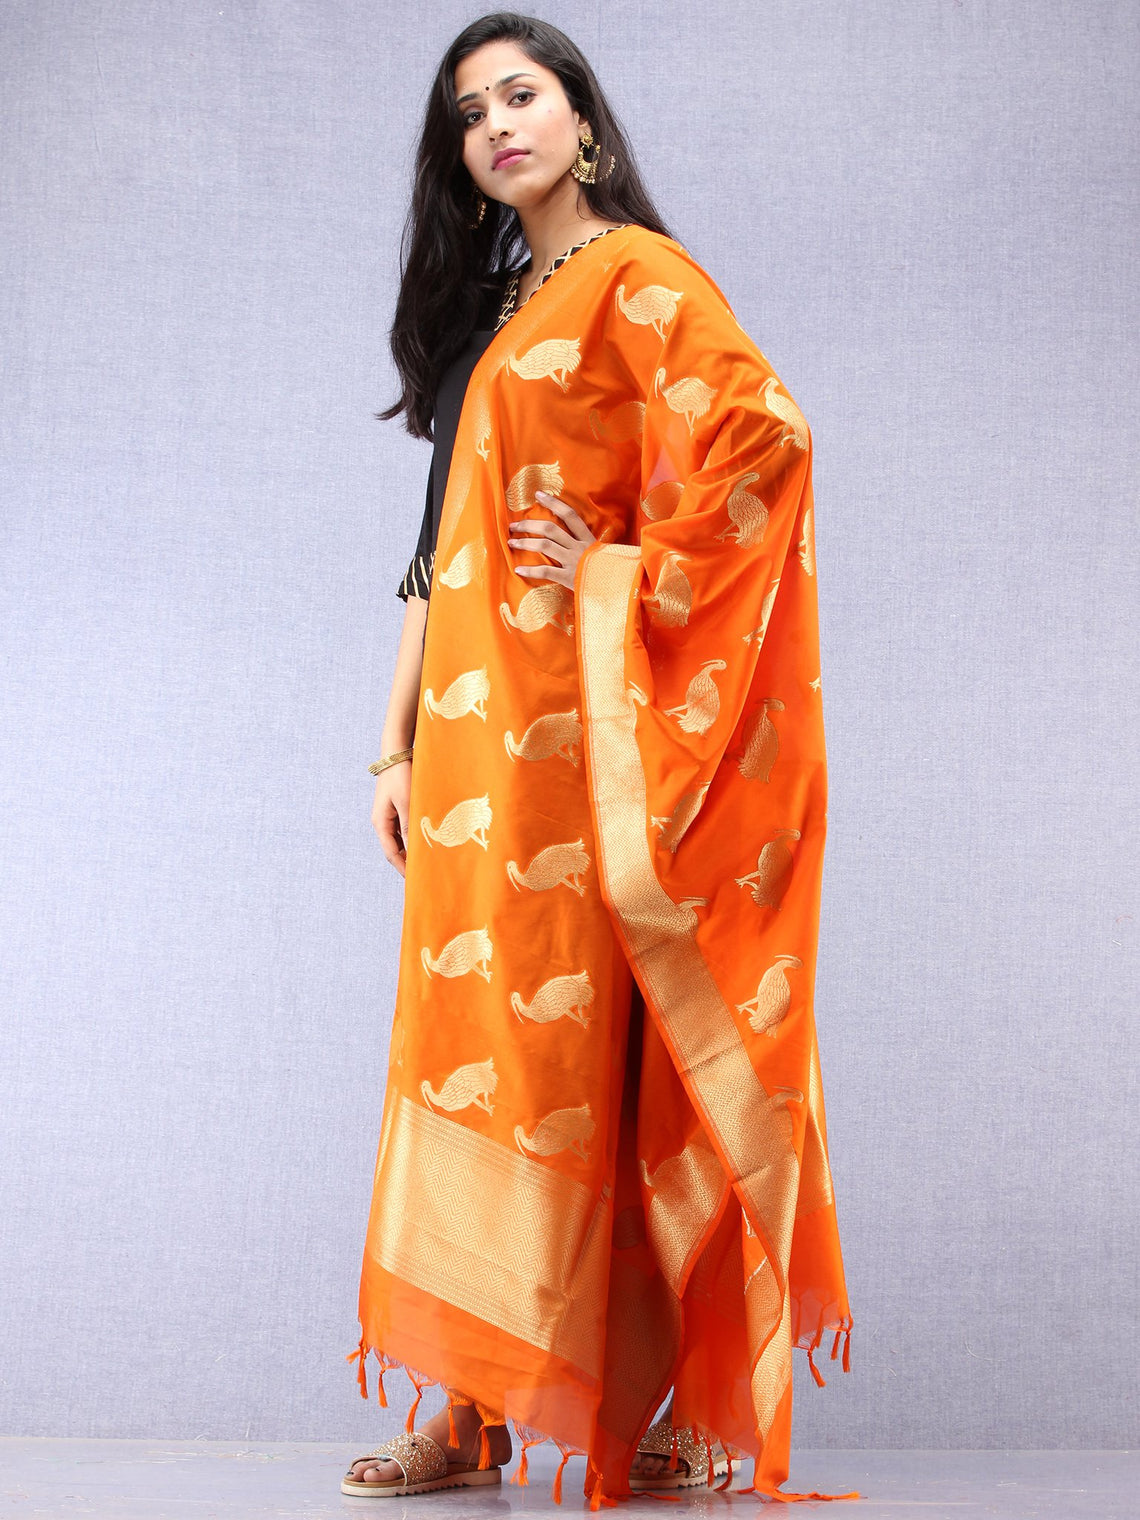 Banarasi Kanni Dupatta With Zari Work - Orange & Gold - D04170868